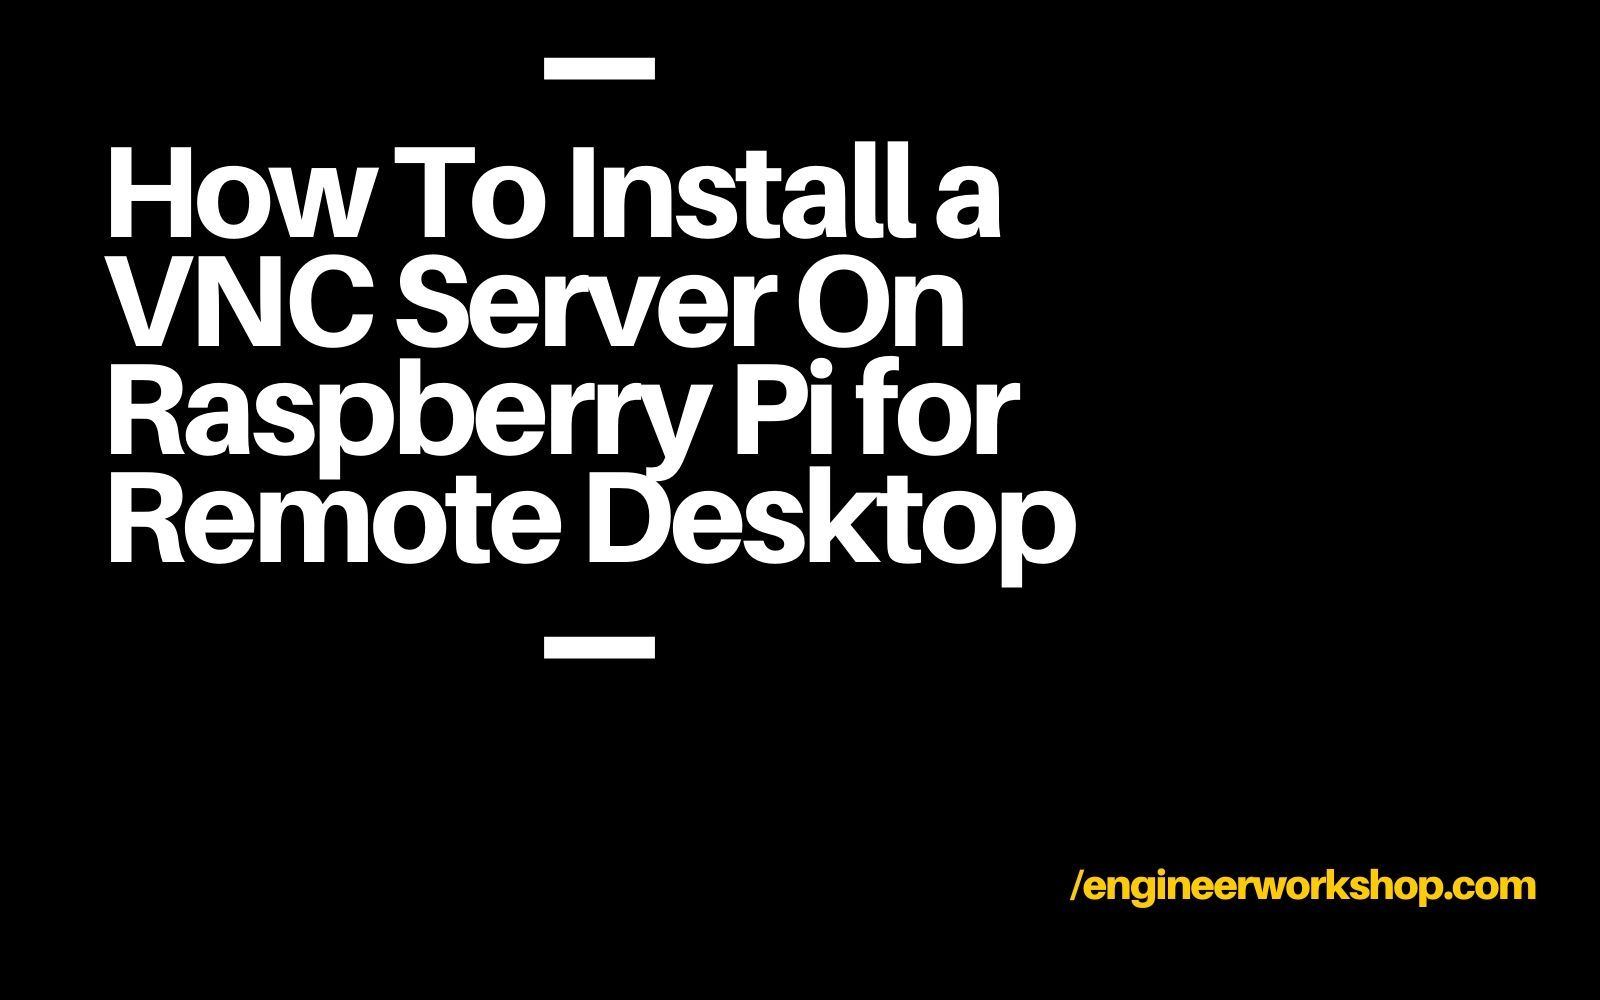 How To Install a VNC Server On Raspberry Pi for Remote Desktop